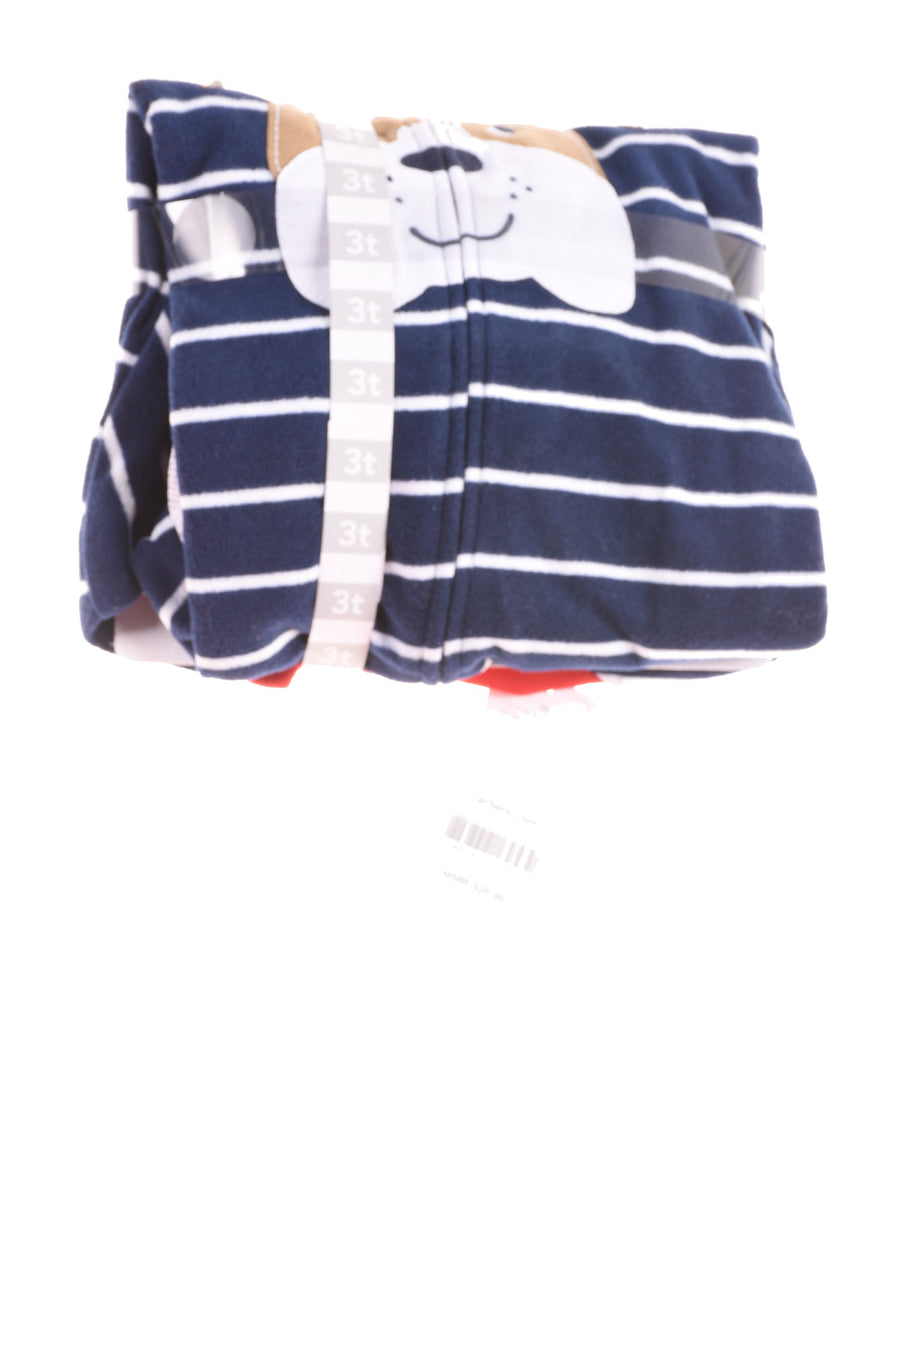 Toddler Boy's Pajamas By Carter's